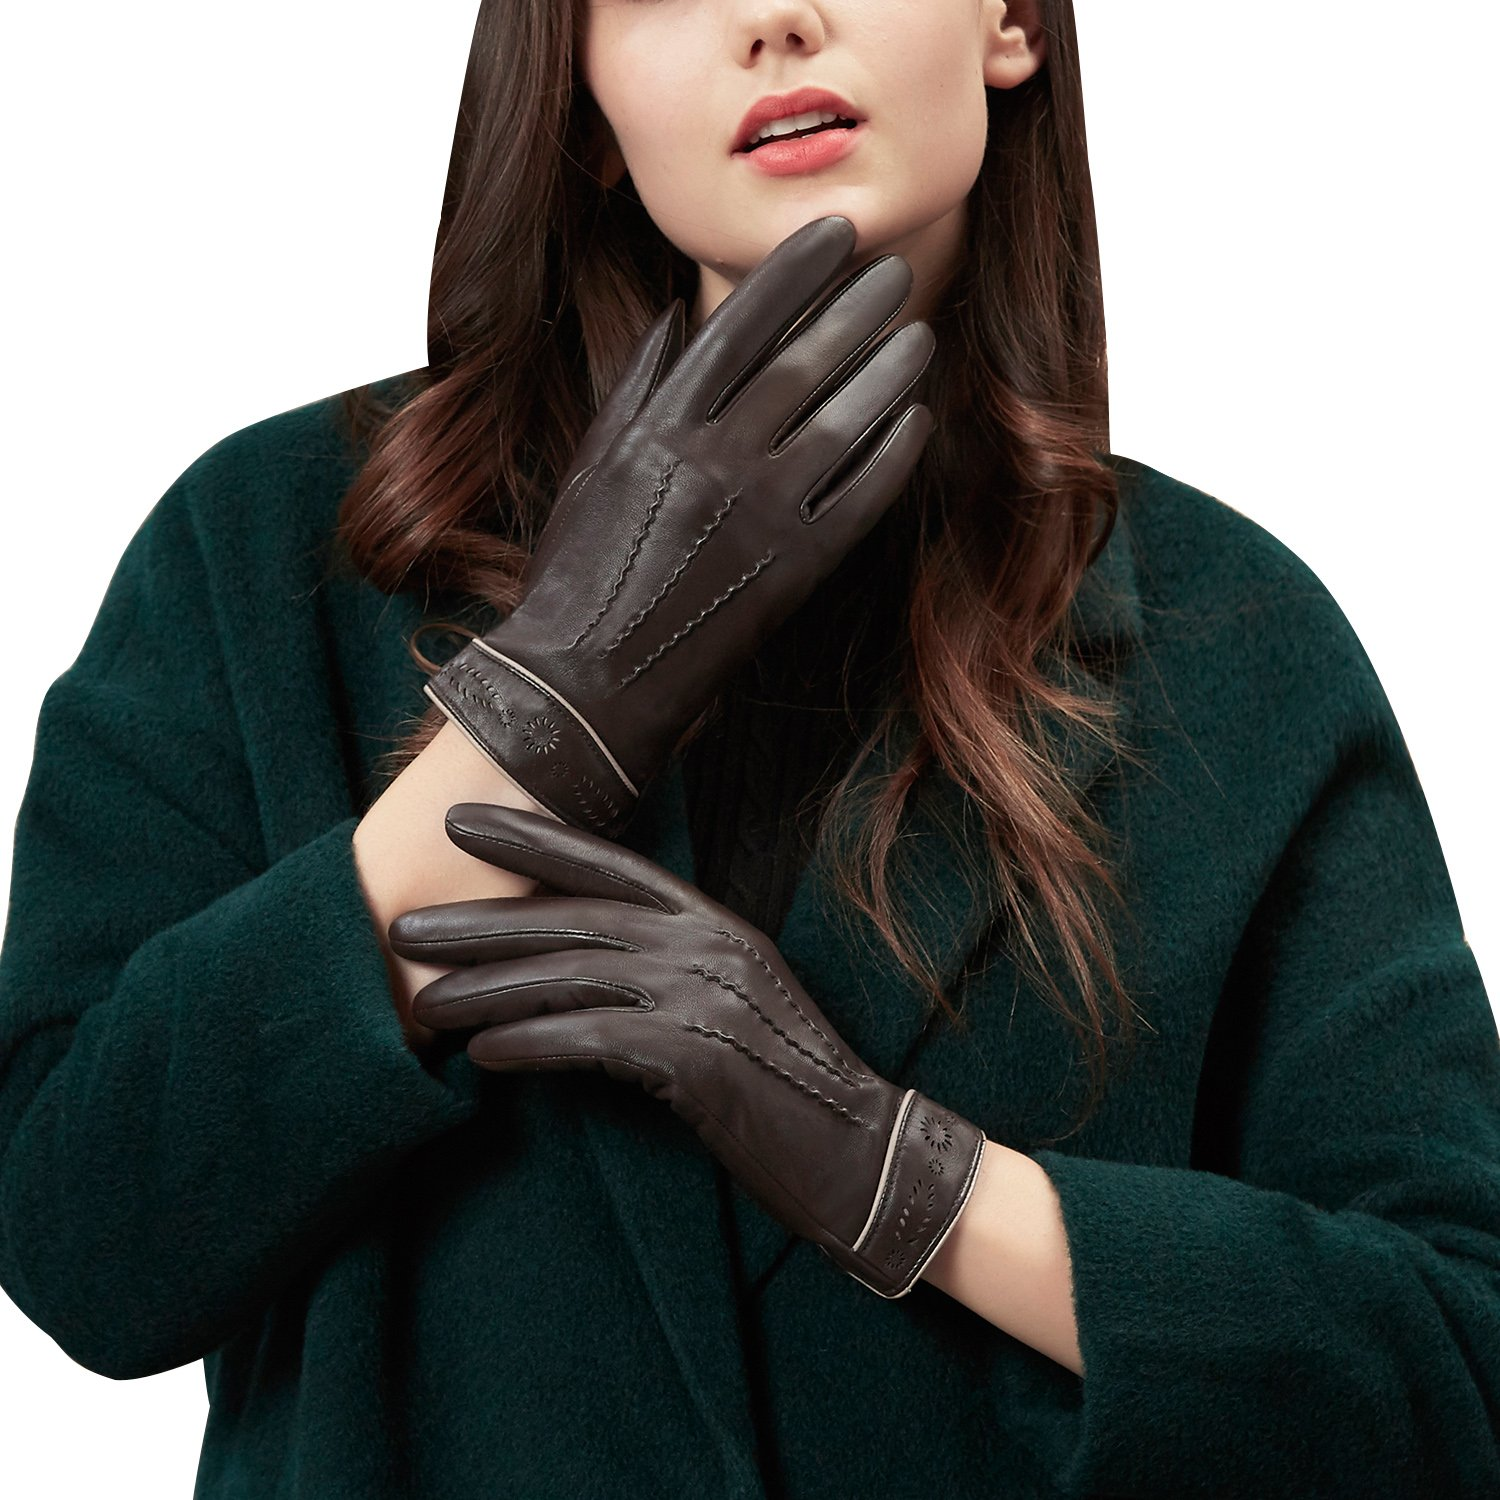 GSG Womens Exotic Sunflower Carved Driving Gloves 3-line Embossing Touchscreen Texting Gloves Genuine Leather Warm Winter Gifts Brown 7.5